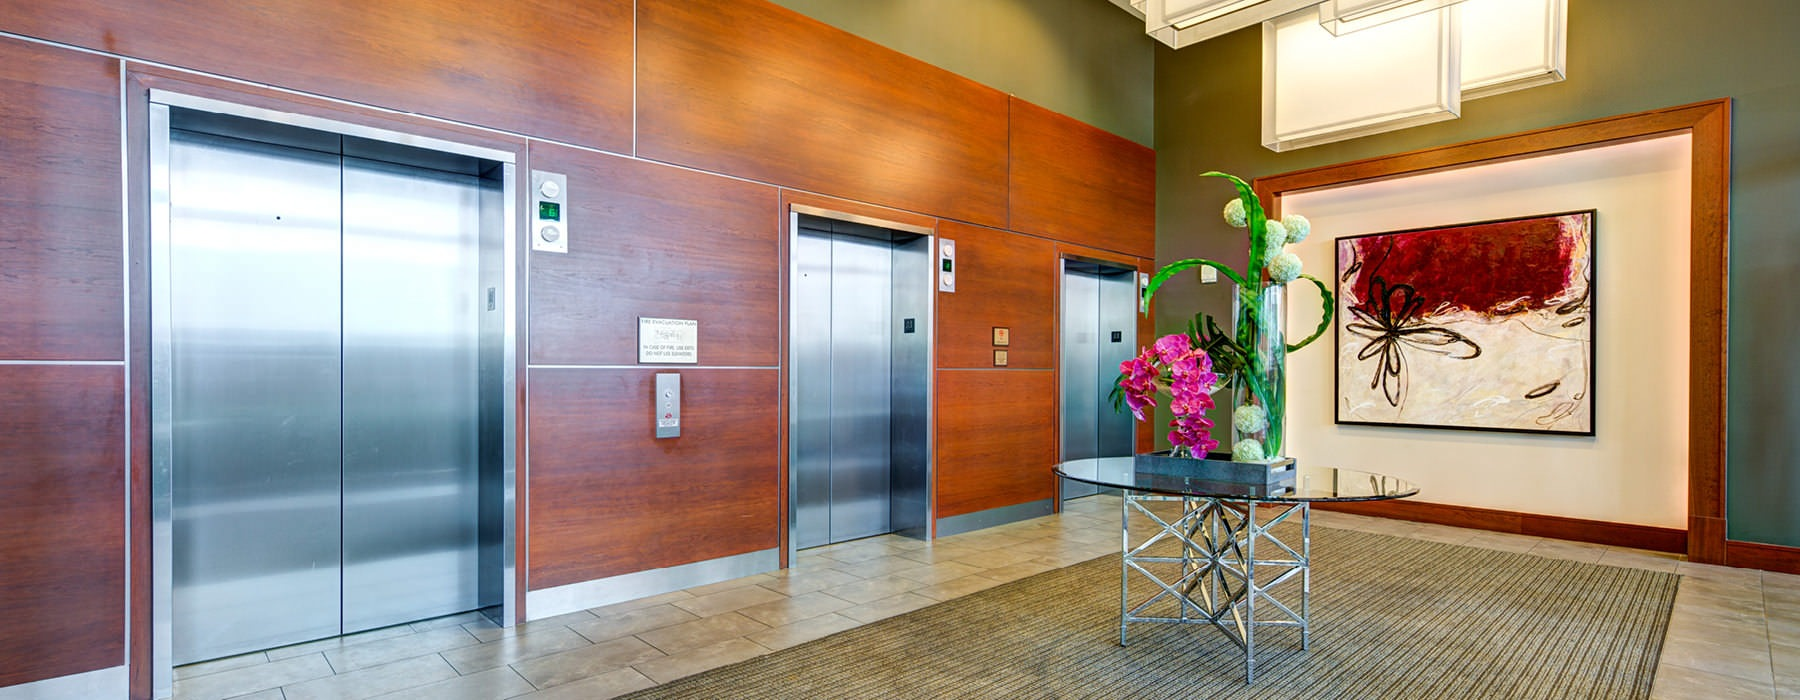 elevators in bright, spacious lobby